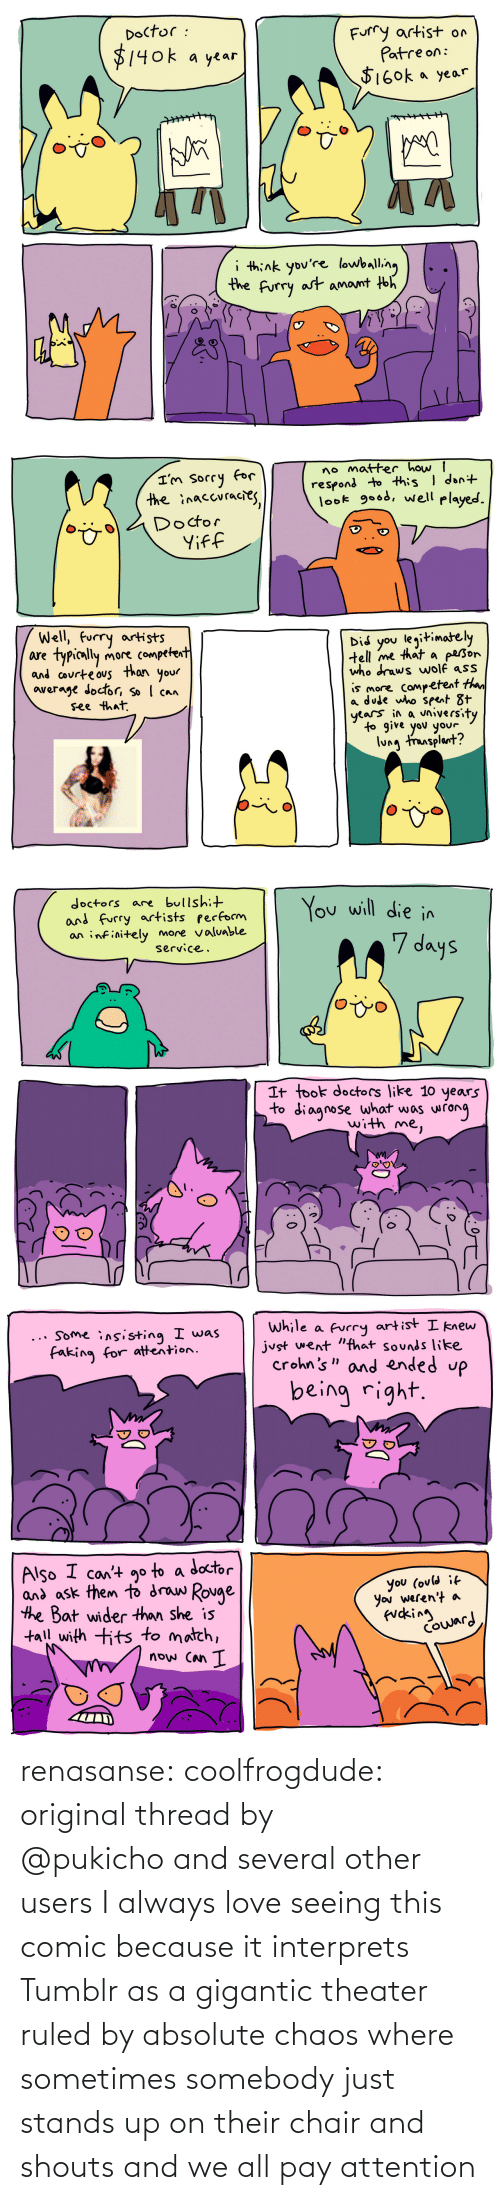 attention: renasanse:  coolfrogdude: original thread by @pukicho and several other users I always love seeing this comic because it interprets Tumblr as a gigantic theater ruled by absolute chaos where sometimes somebody just stands up on their chair and shouts and we all pay attention